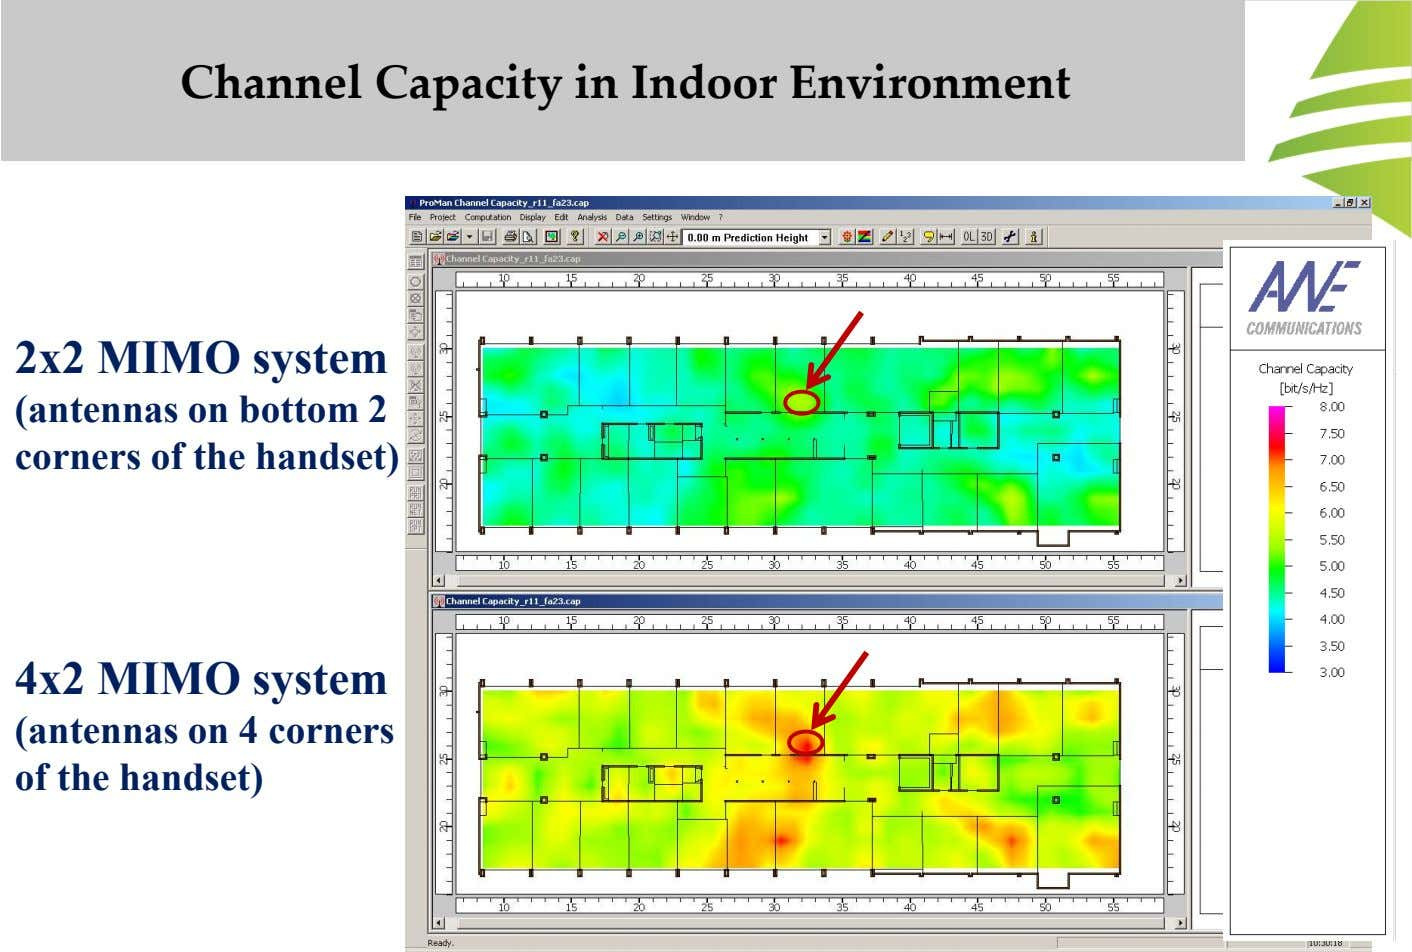 Channel Capacity in Indoor Environment 2x2 MIMO system (antennas on bottom 2 corners of the handset)